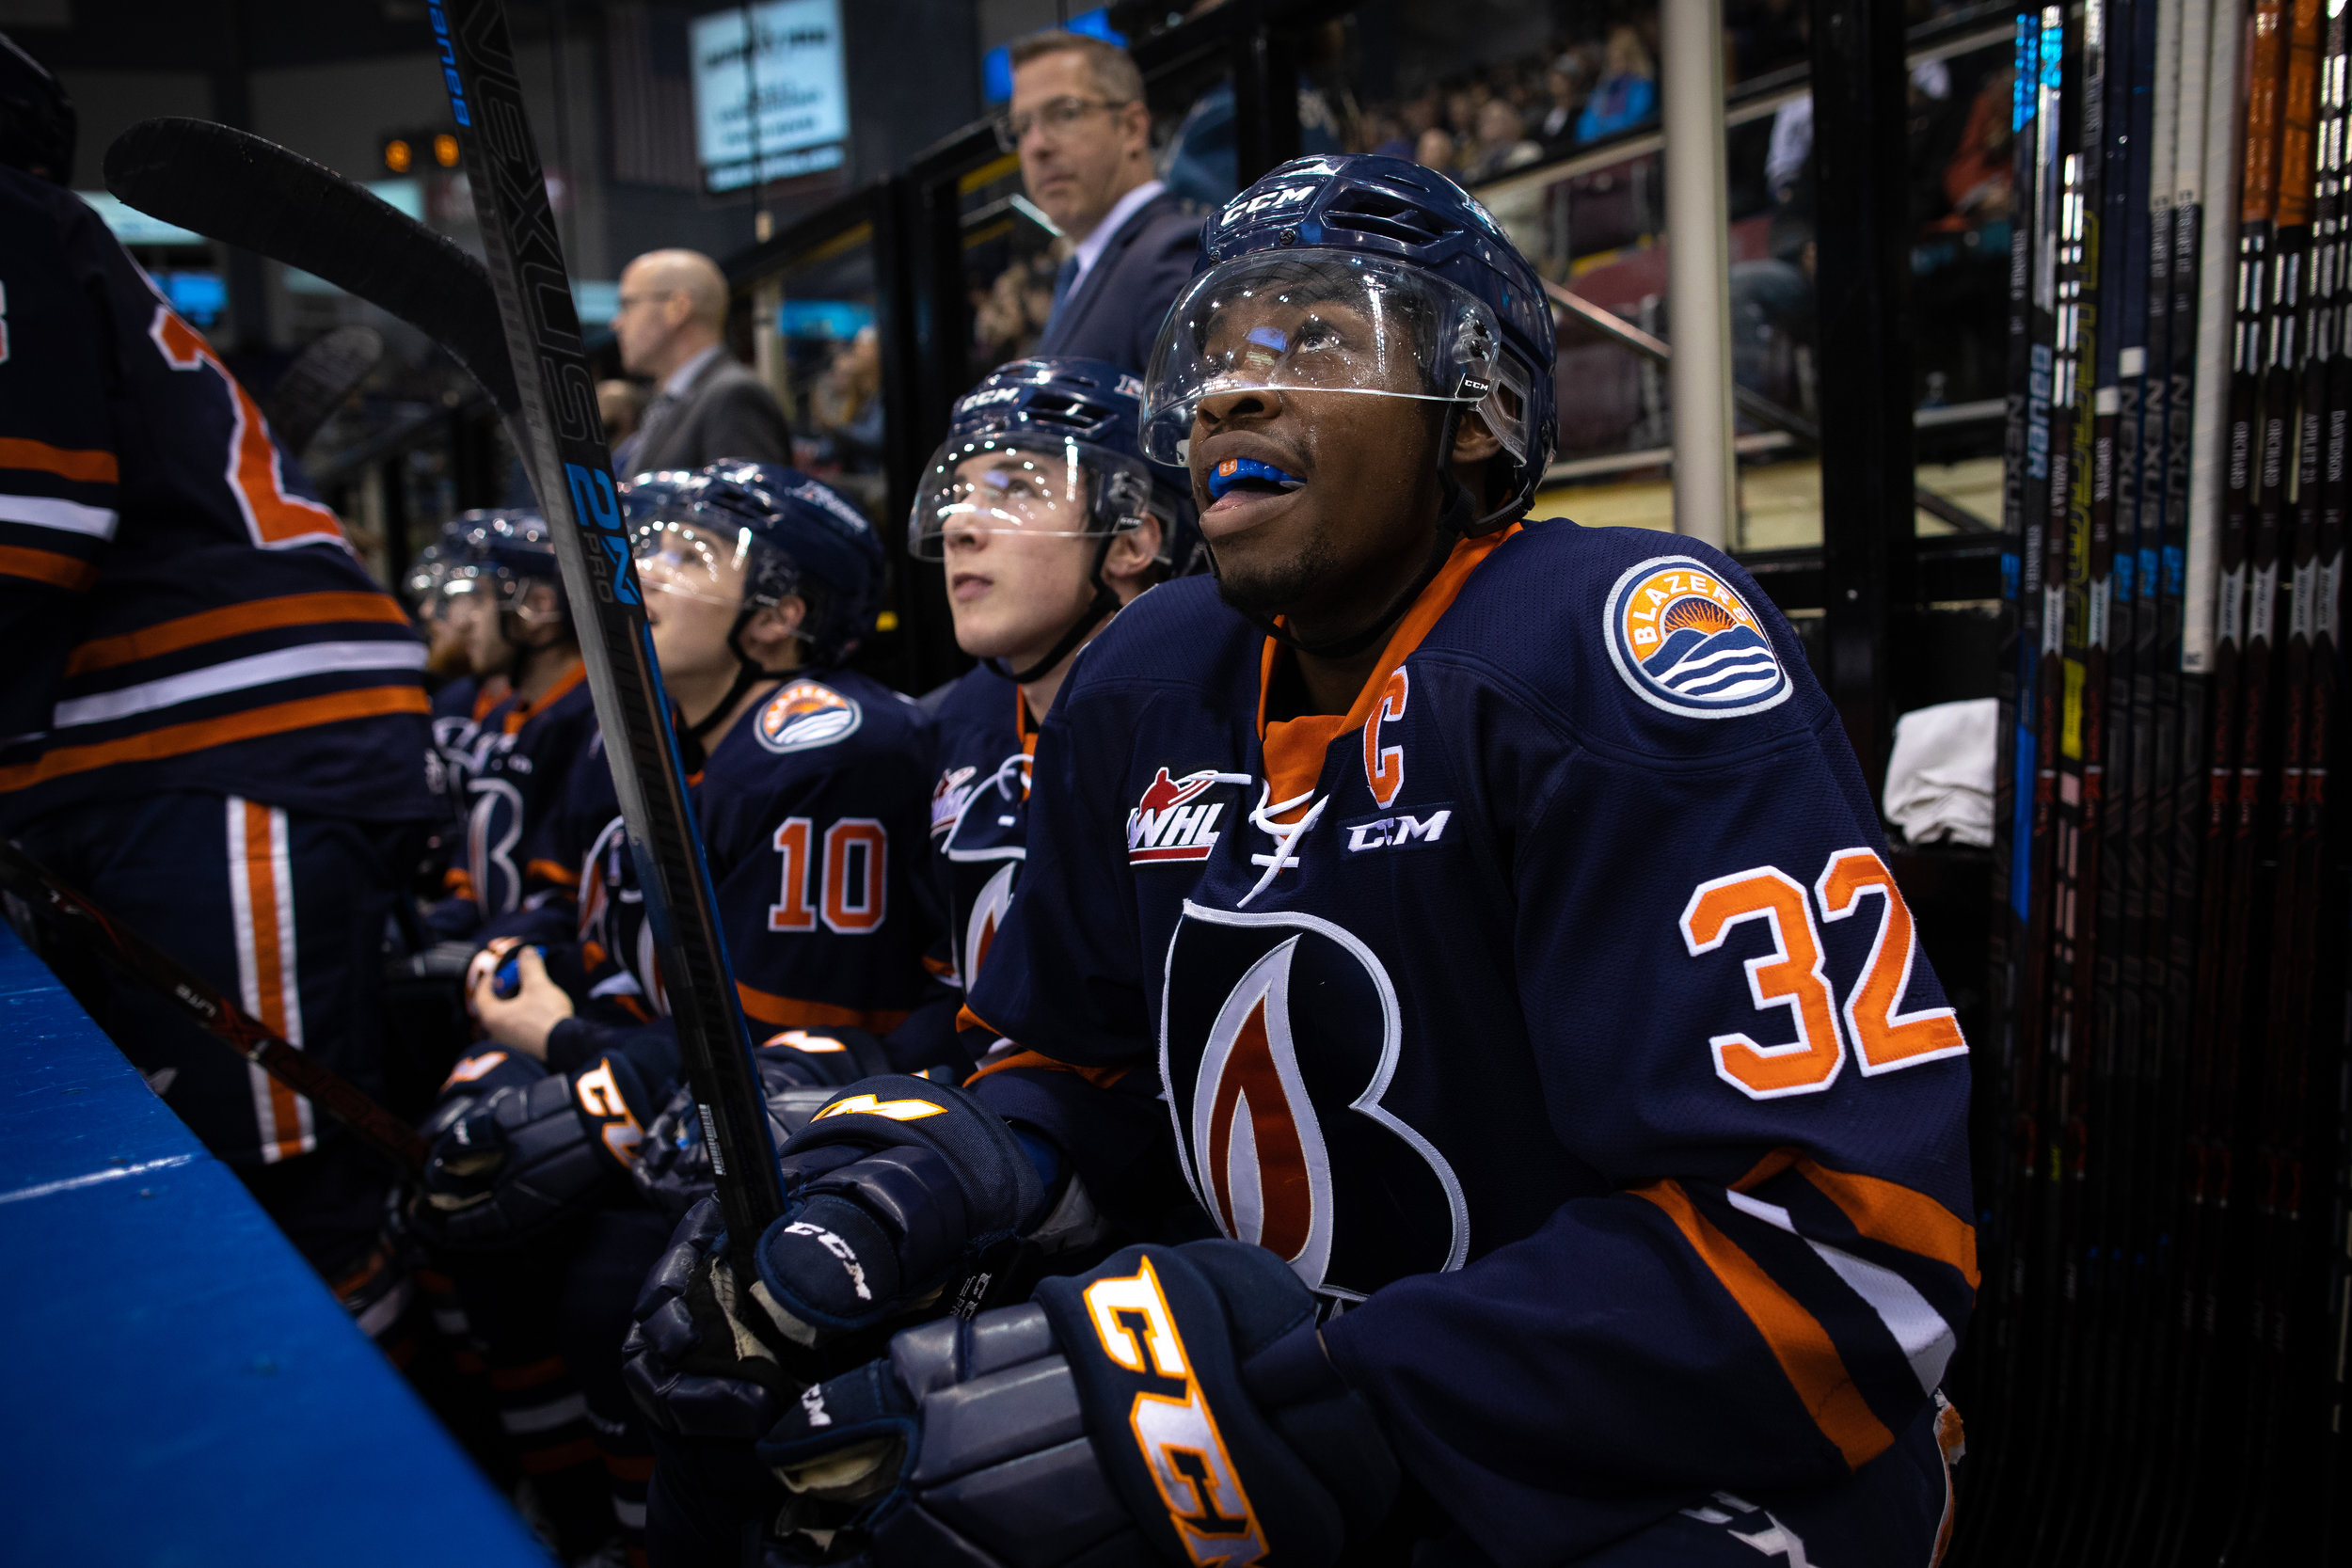 #32 Jermaine Loewen - Game 2 - WHL Playoffs 2019 Victoria Royals VS Kamloops Blazers - March 23 2019 (4-3 Loss). Photo by Jay Wallace-34684.jpg